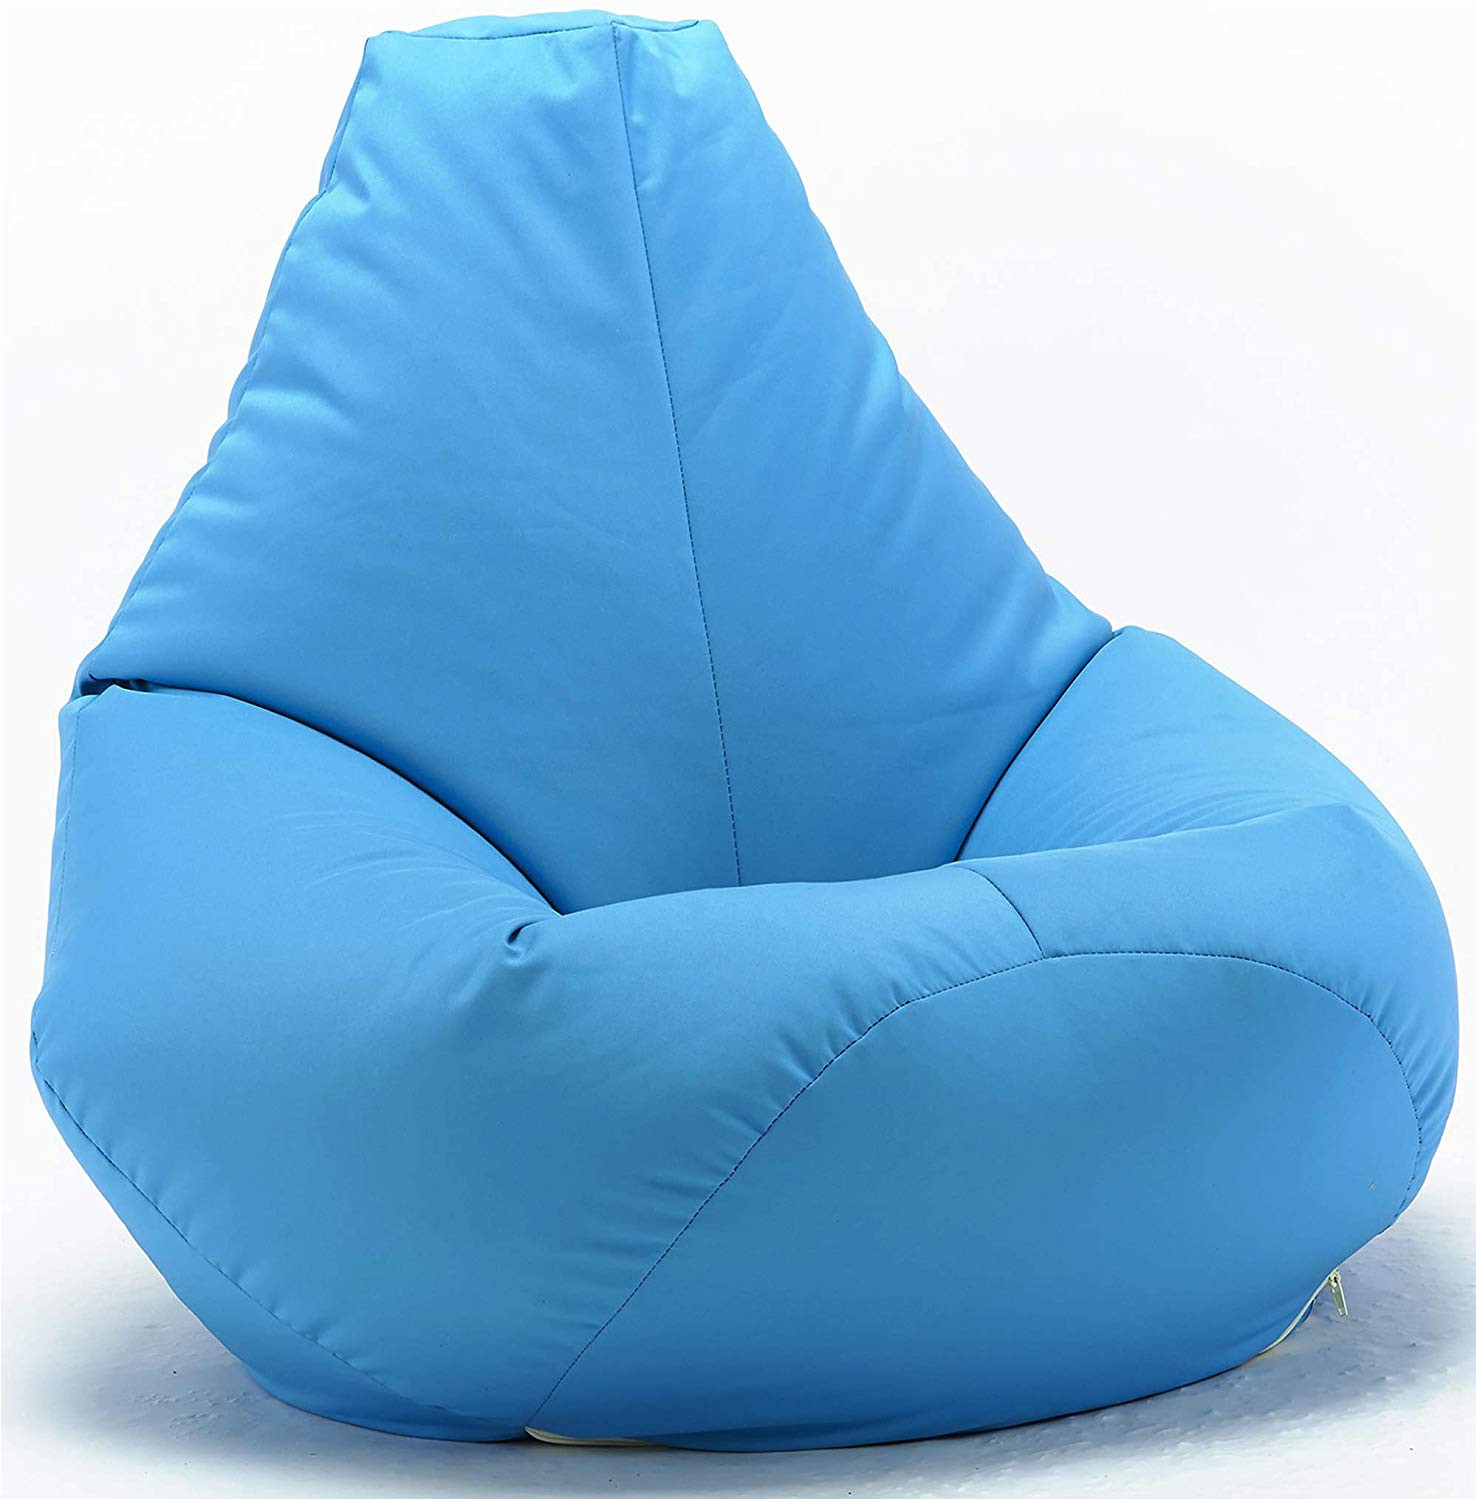 xx l aqua highback beanbag chair water resistant bean bags for indoor and outdoor use great for gaming chair and garden chair amazon co uk garden